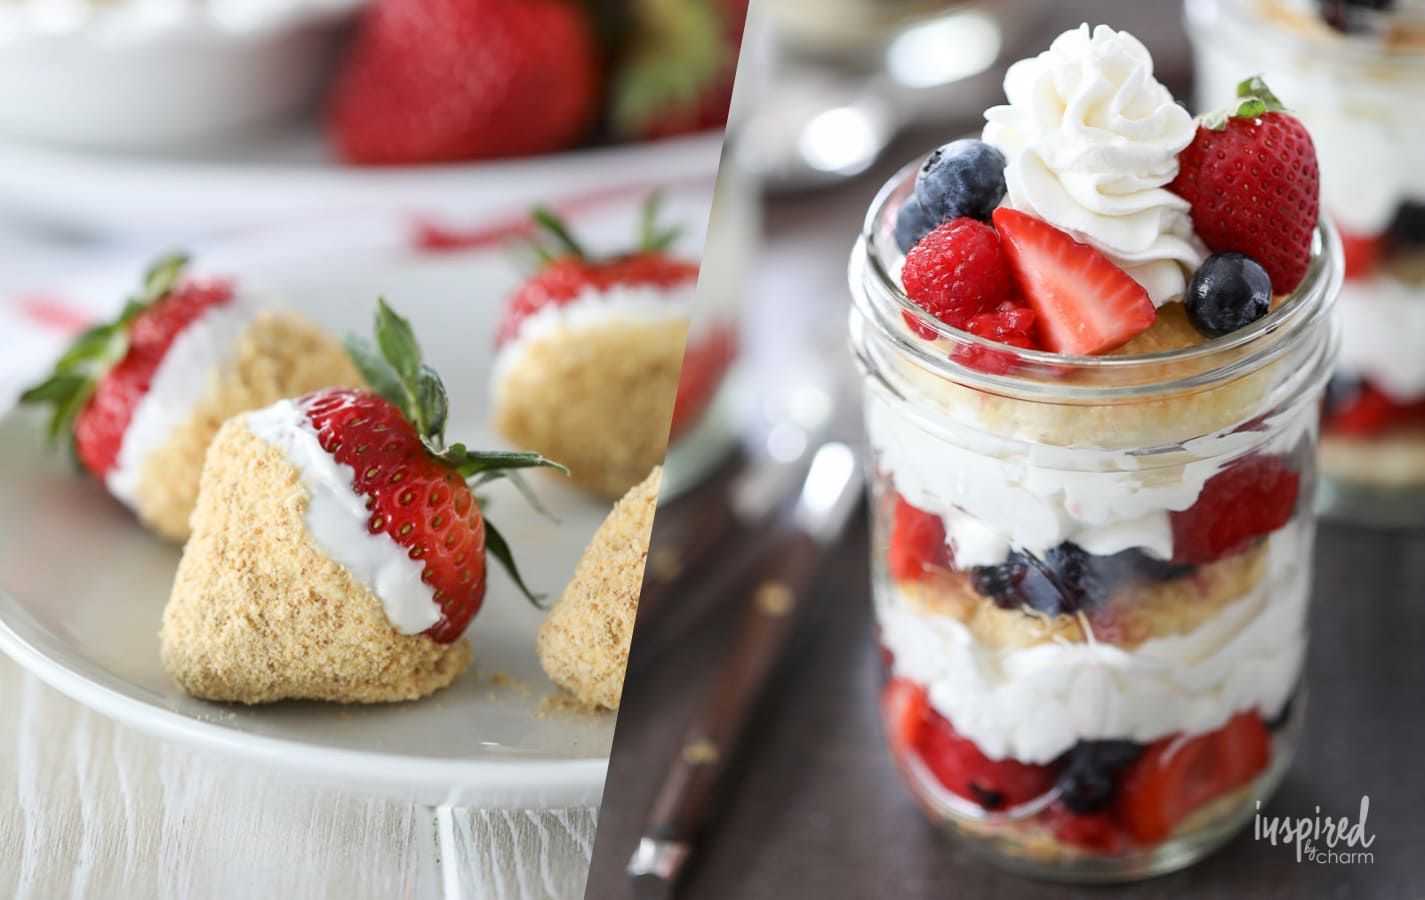 The Best 4th of July Dessert Recipes #4thofJuly #dessert #recipes #independenceday #picnic #cookout #summer